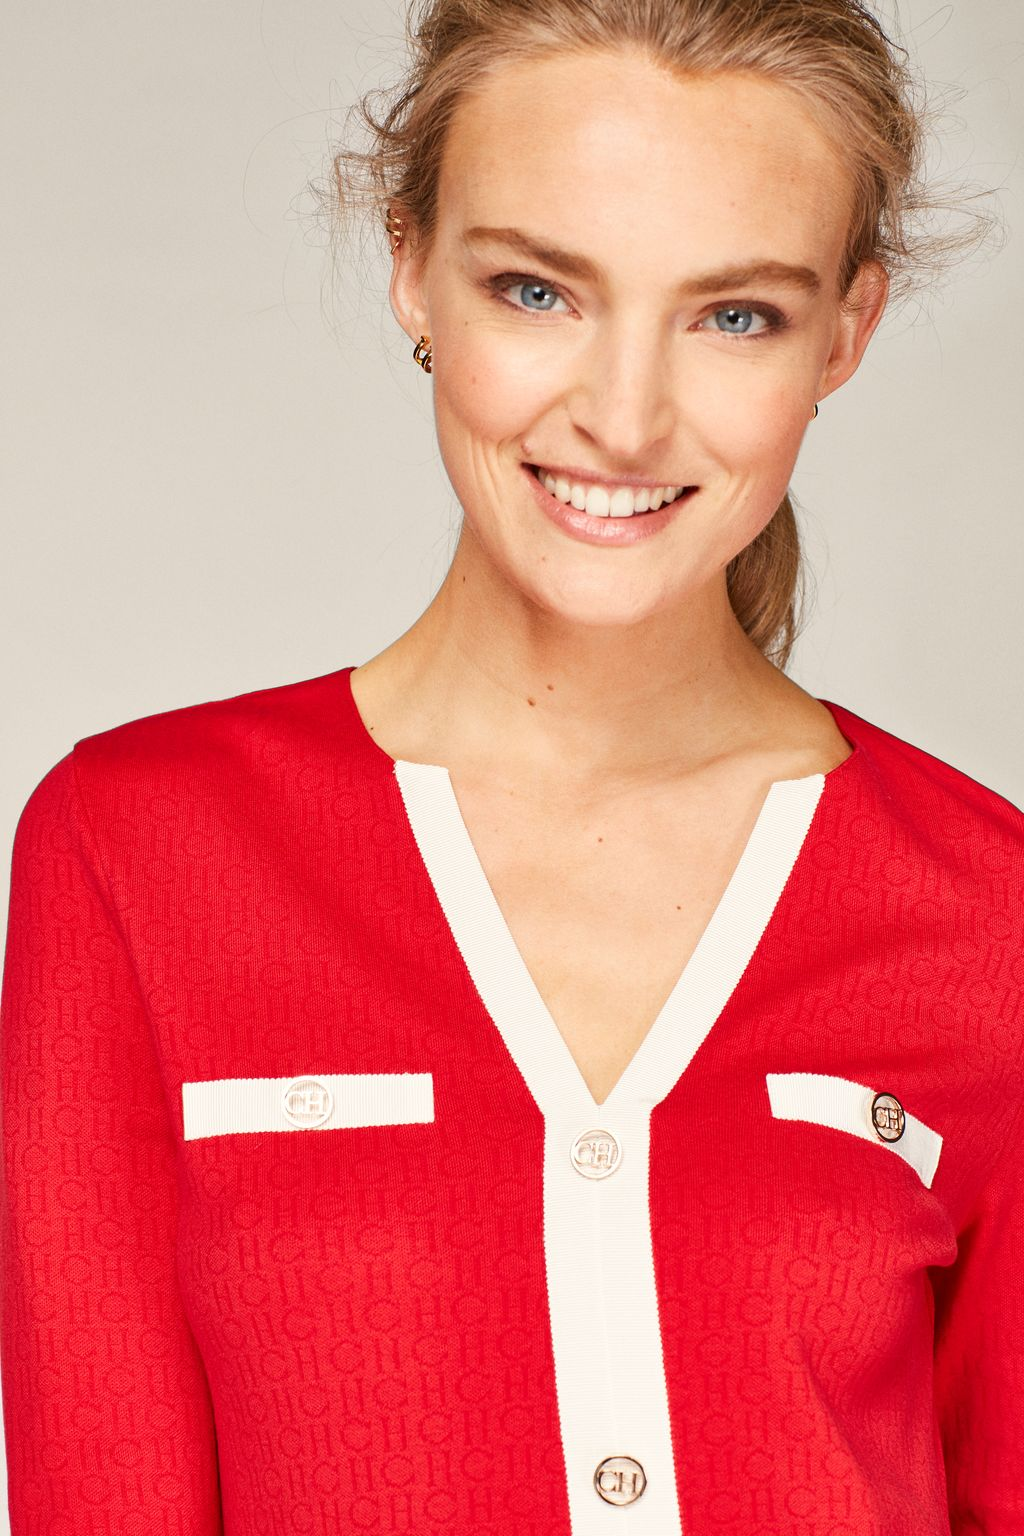 CH jacquard top with grosgrain